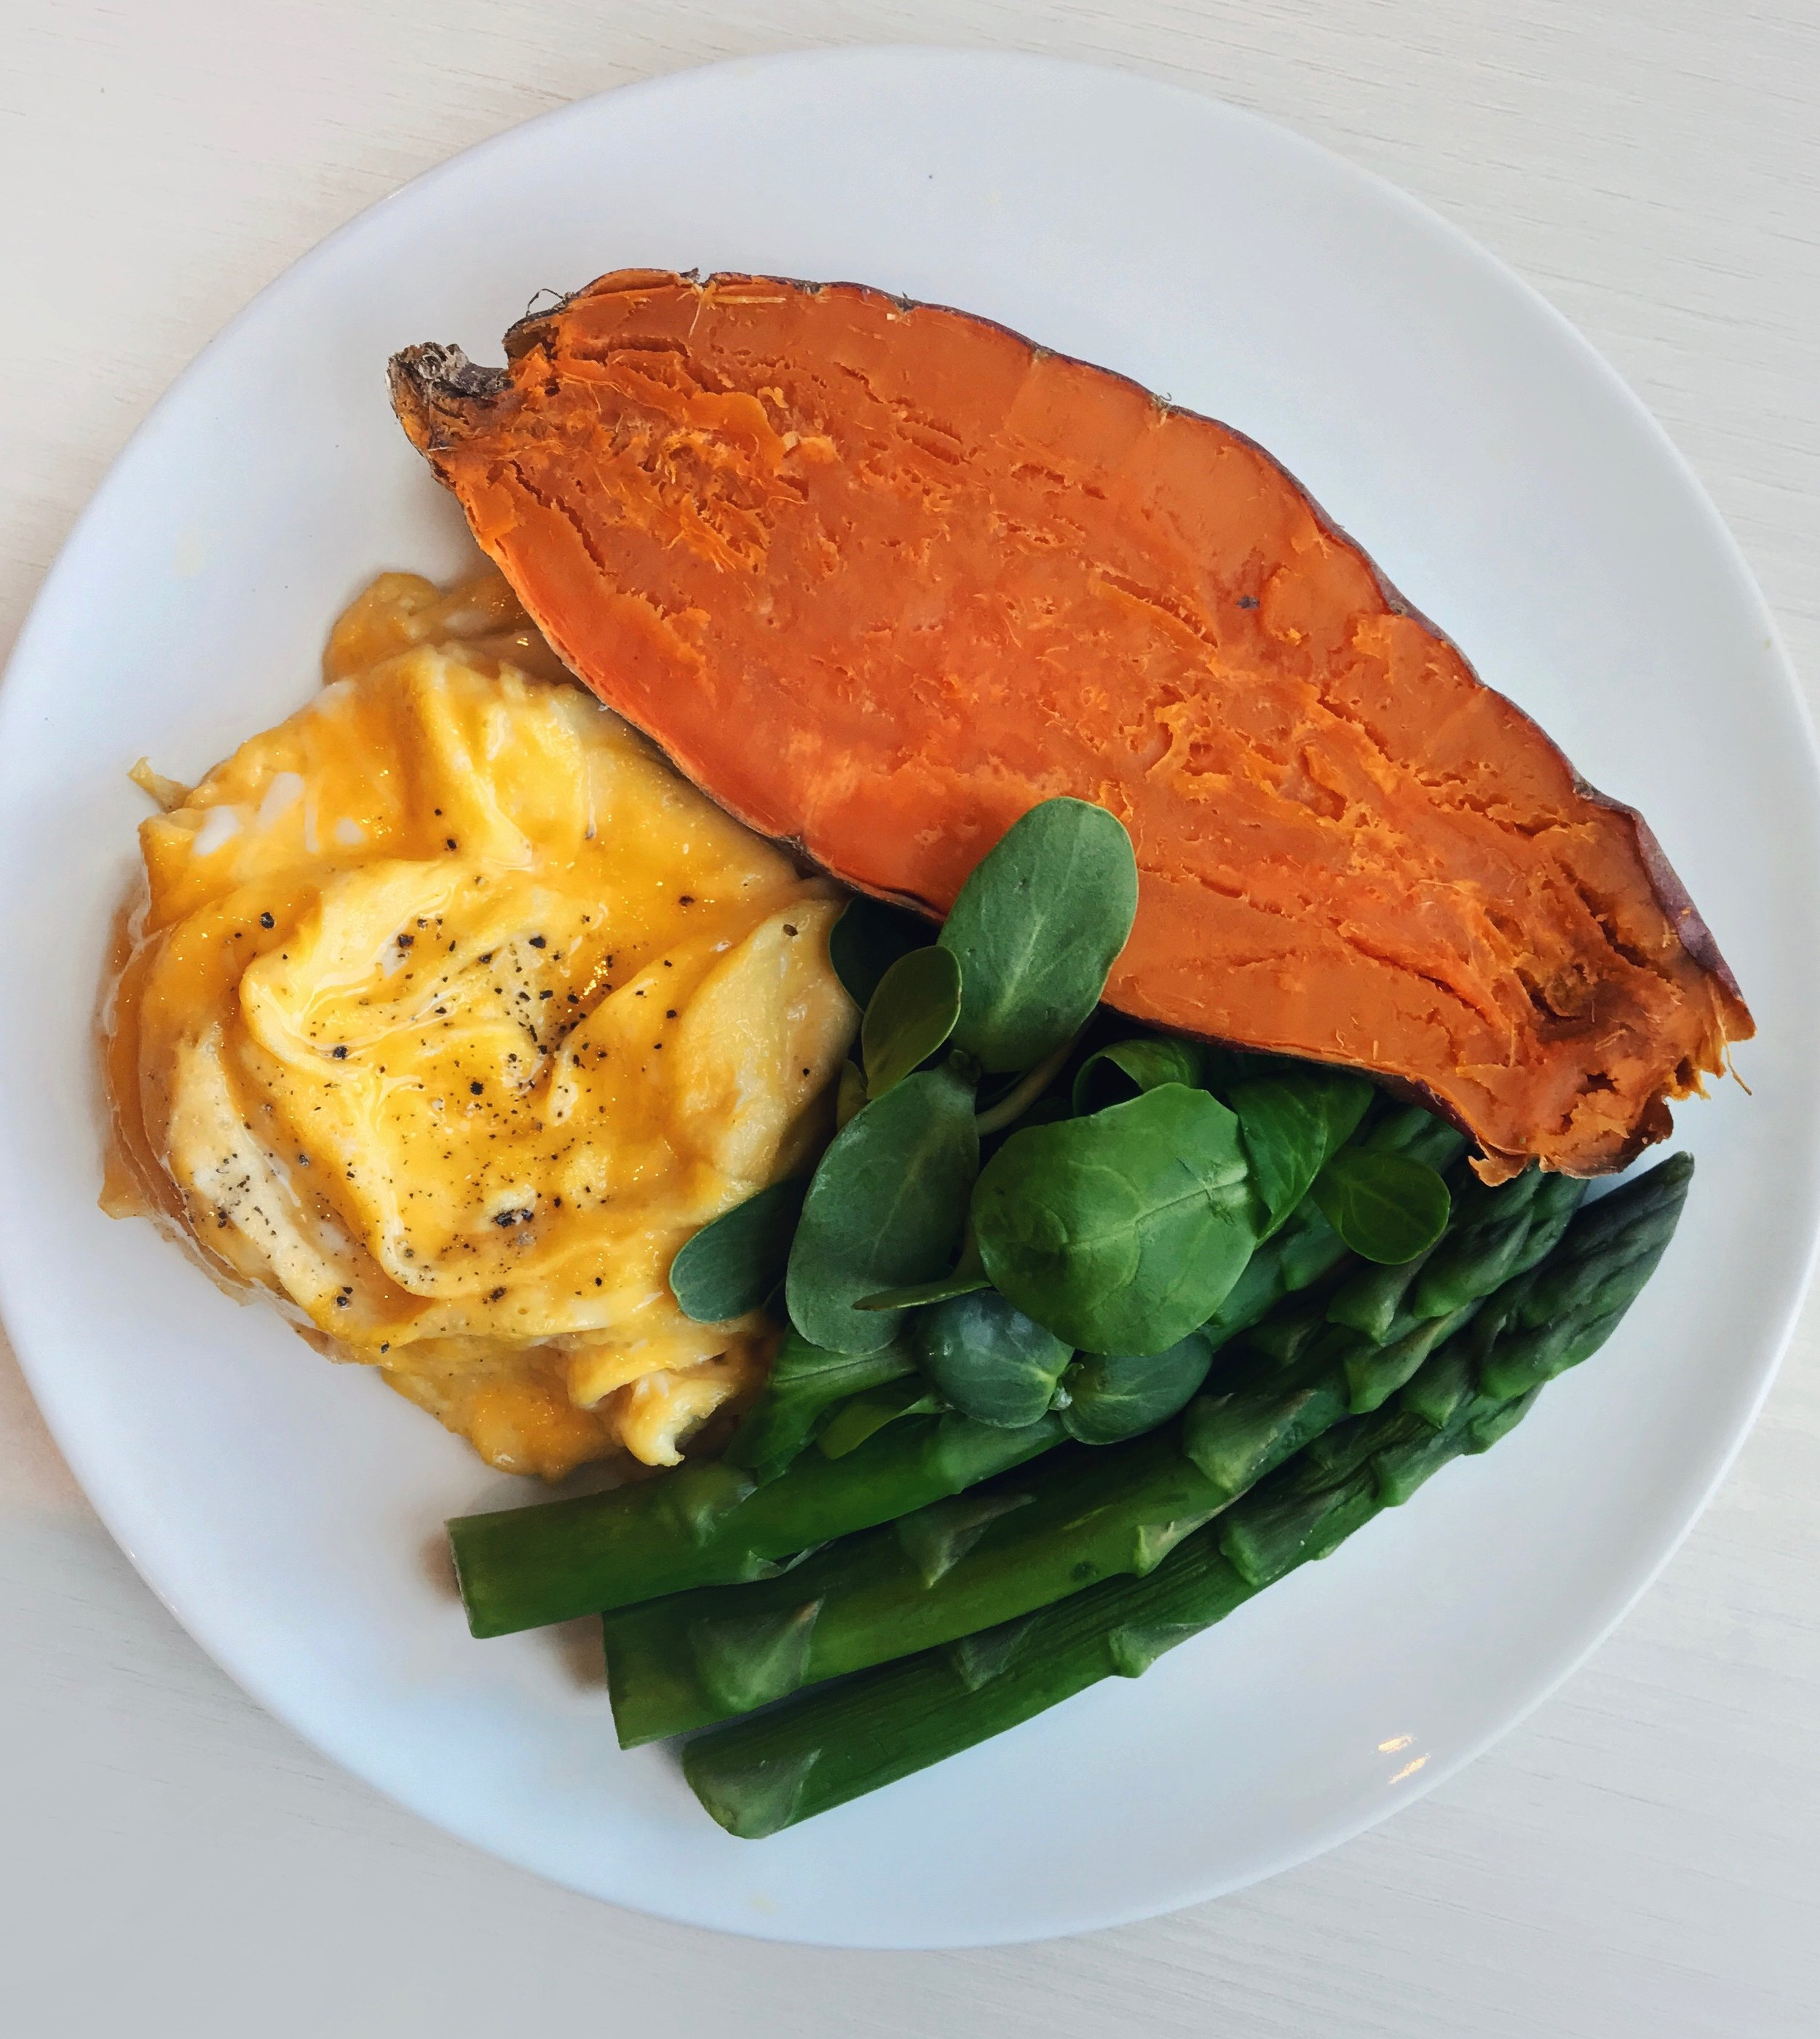 Roasted Sweet Potato, Scrambled Eggs & Greens  - Baked sweet potato (baked for about 30mn in the oven at 390F/200C) + steamed asparagus + scrambled eggs (directions in the tutorial section) + microgreens + saladIf lacking time and if you have one, you can also cook it in a microwave for about 5min in a humidified paper towel.